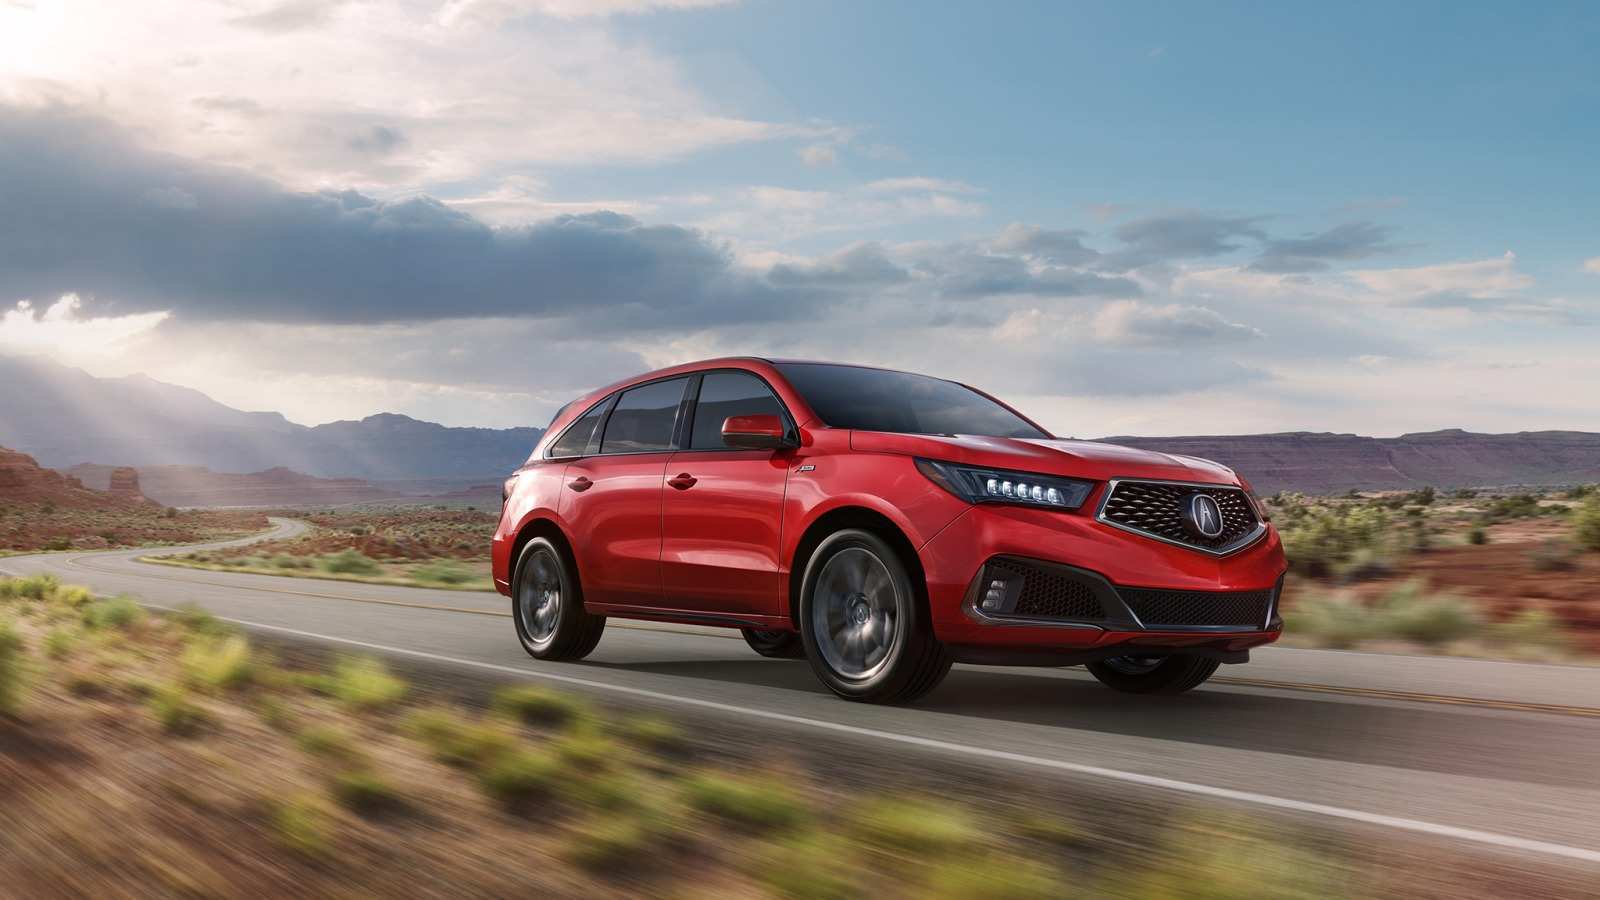 42 Concept of Best Acura Mdx 2019 Release Date Price And Review Ratings for Best Acura Mdx 2019 Release Date Price And Review